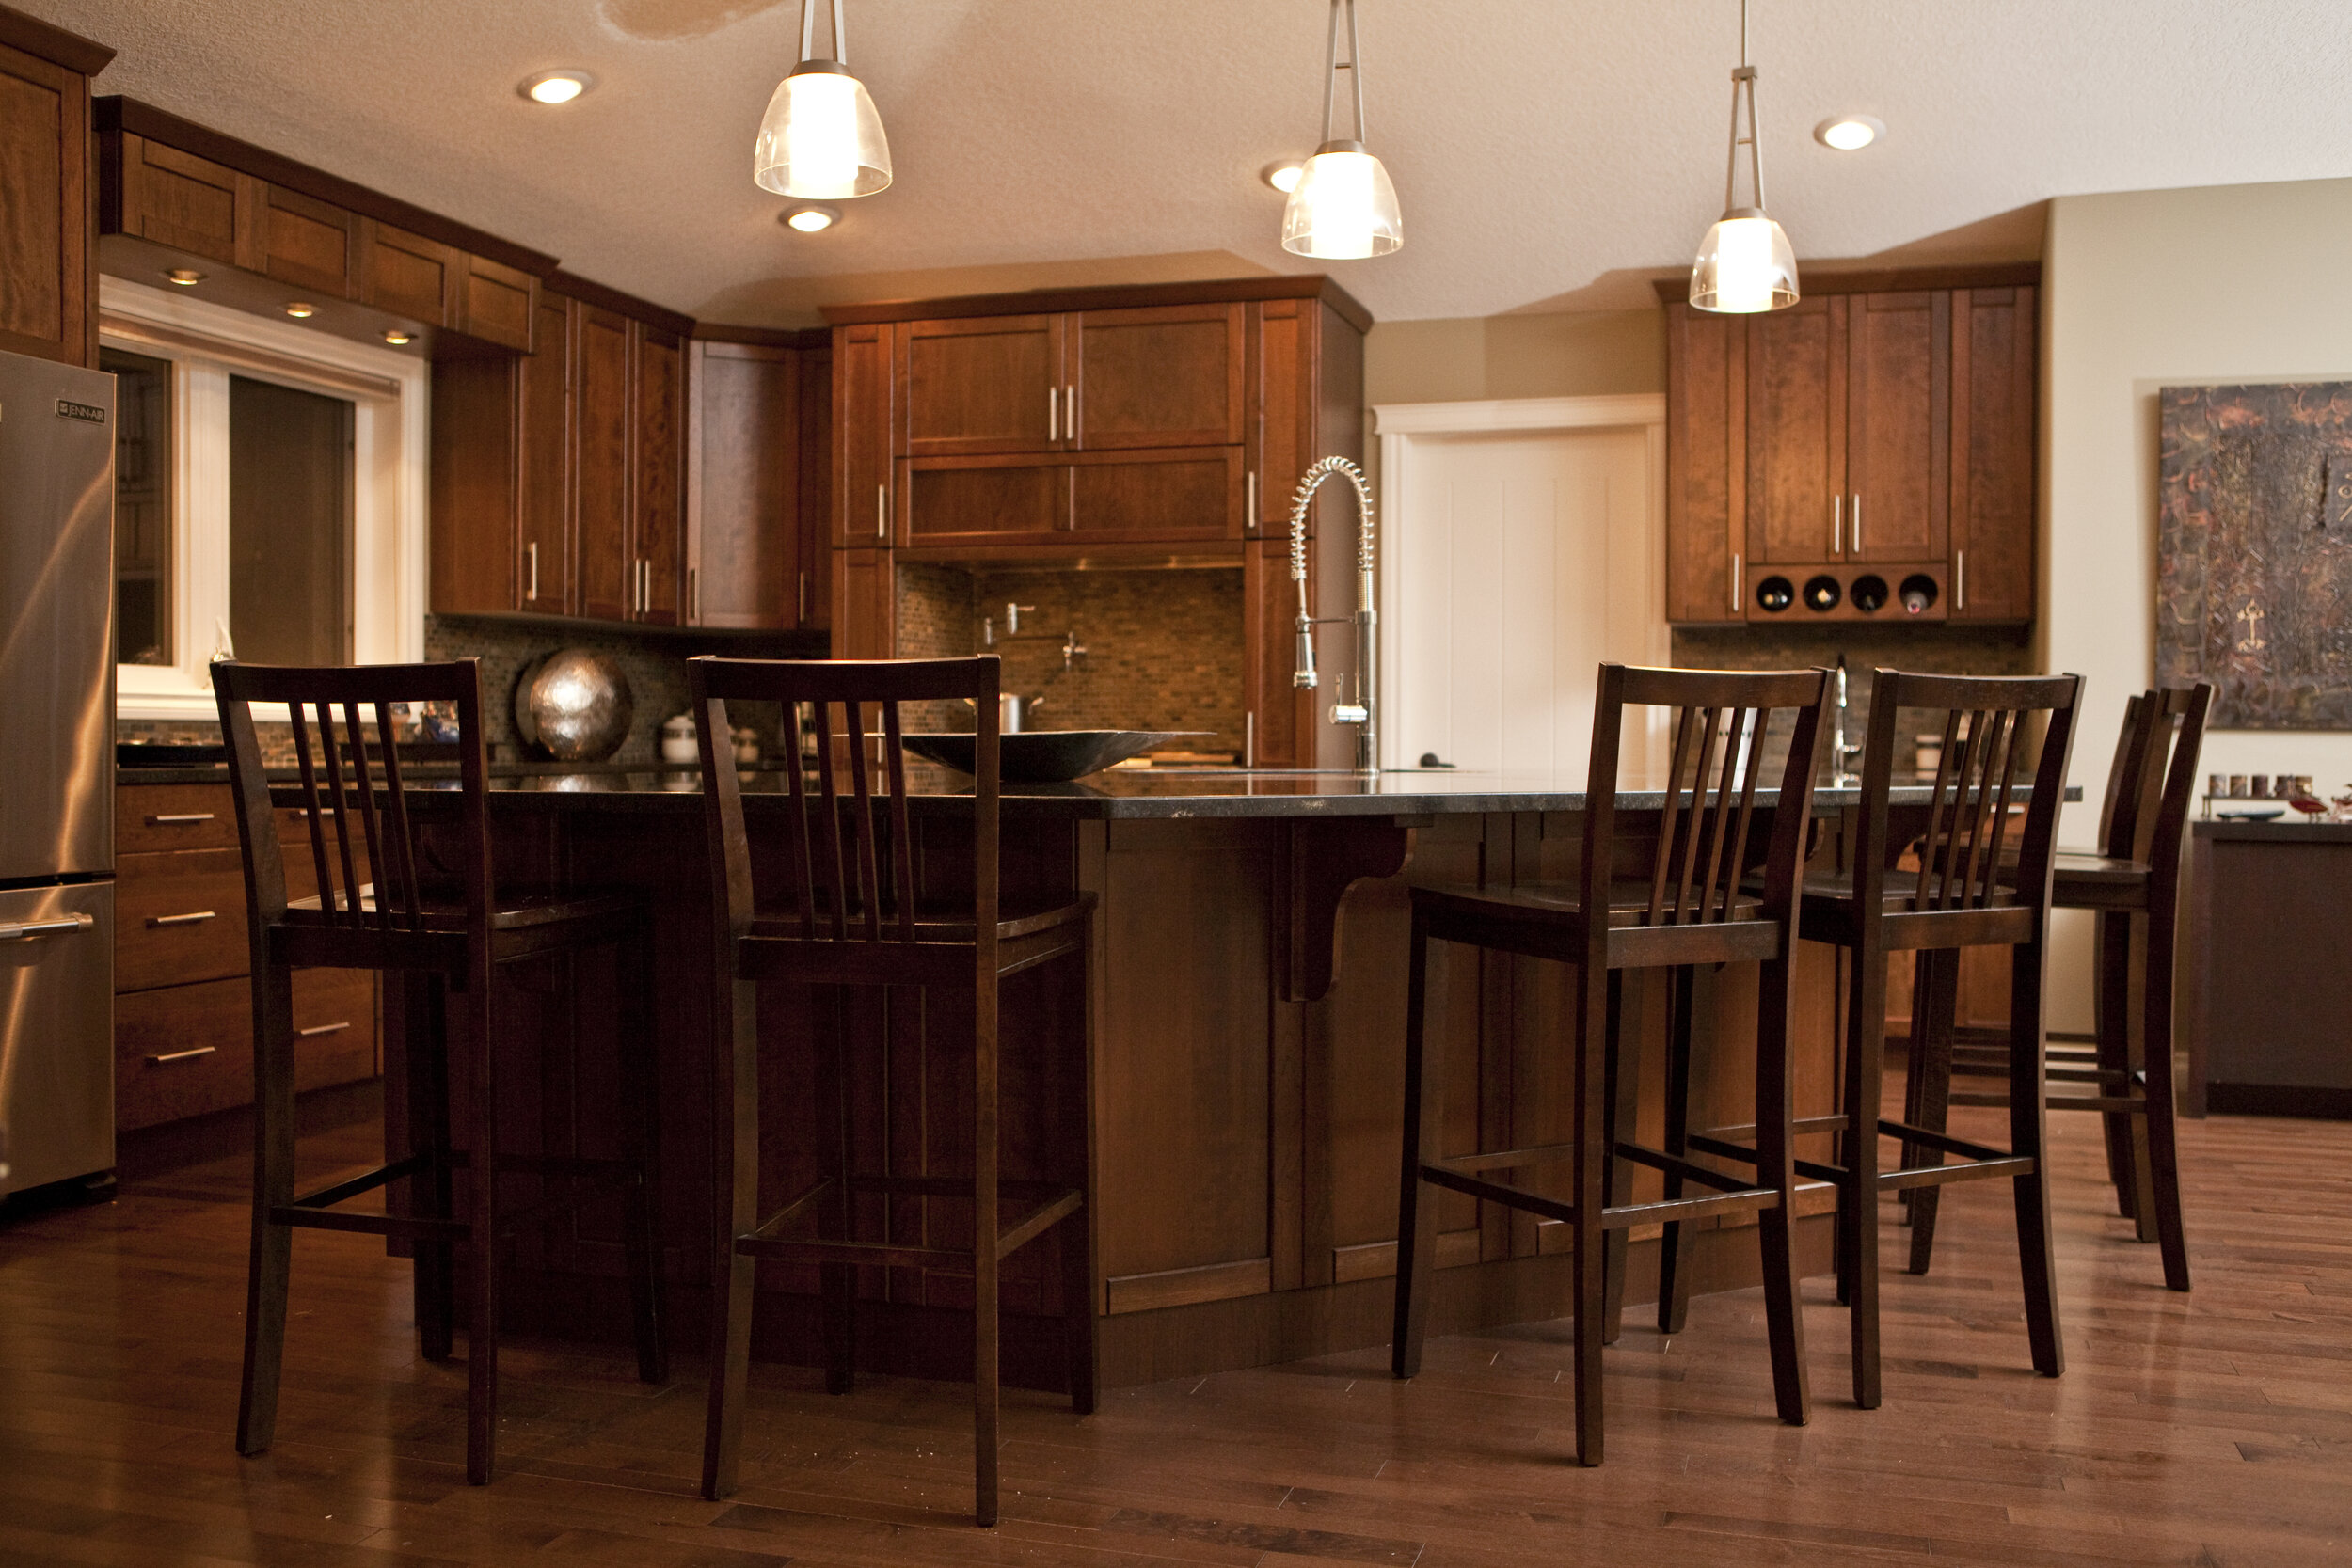 Cabinets Designed for Life